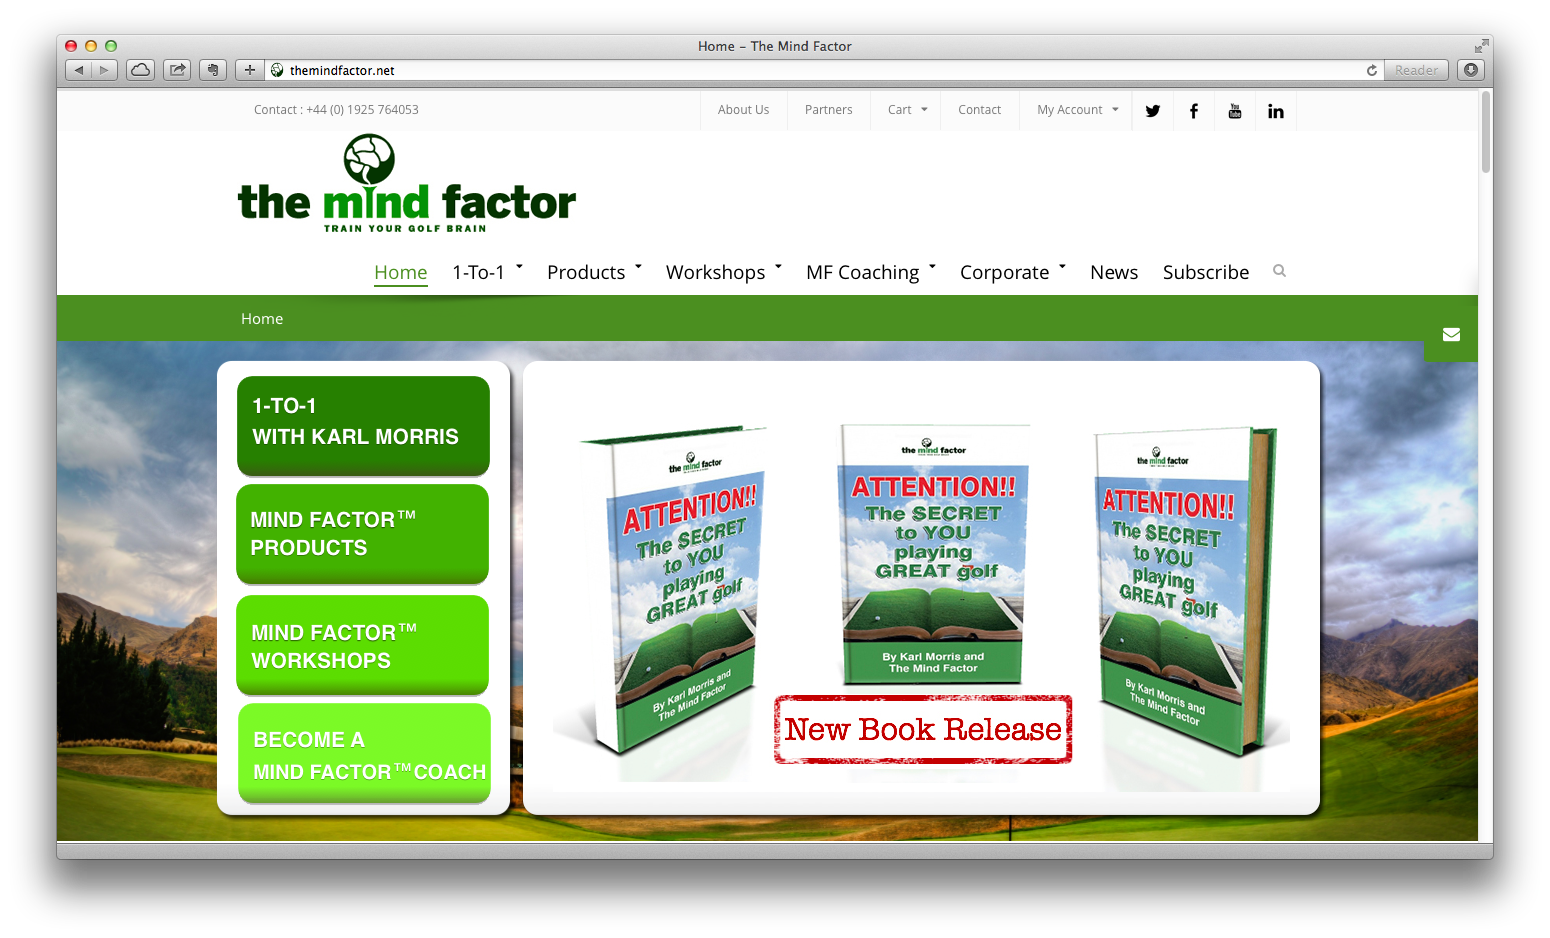 themindfactor